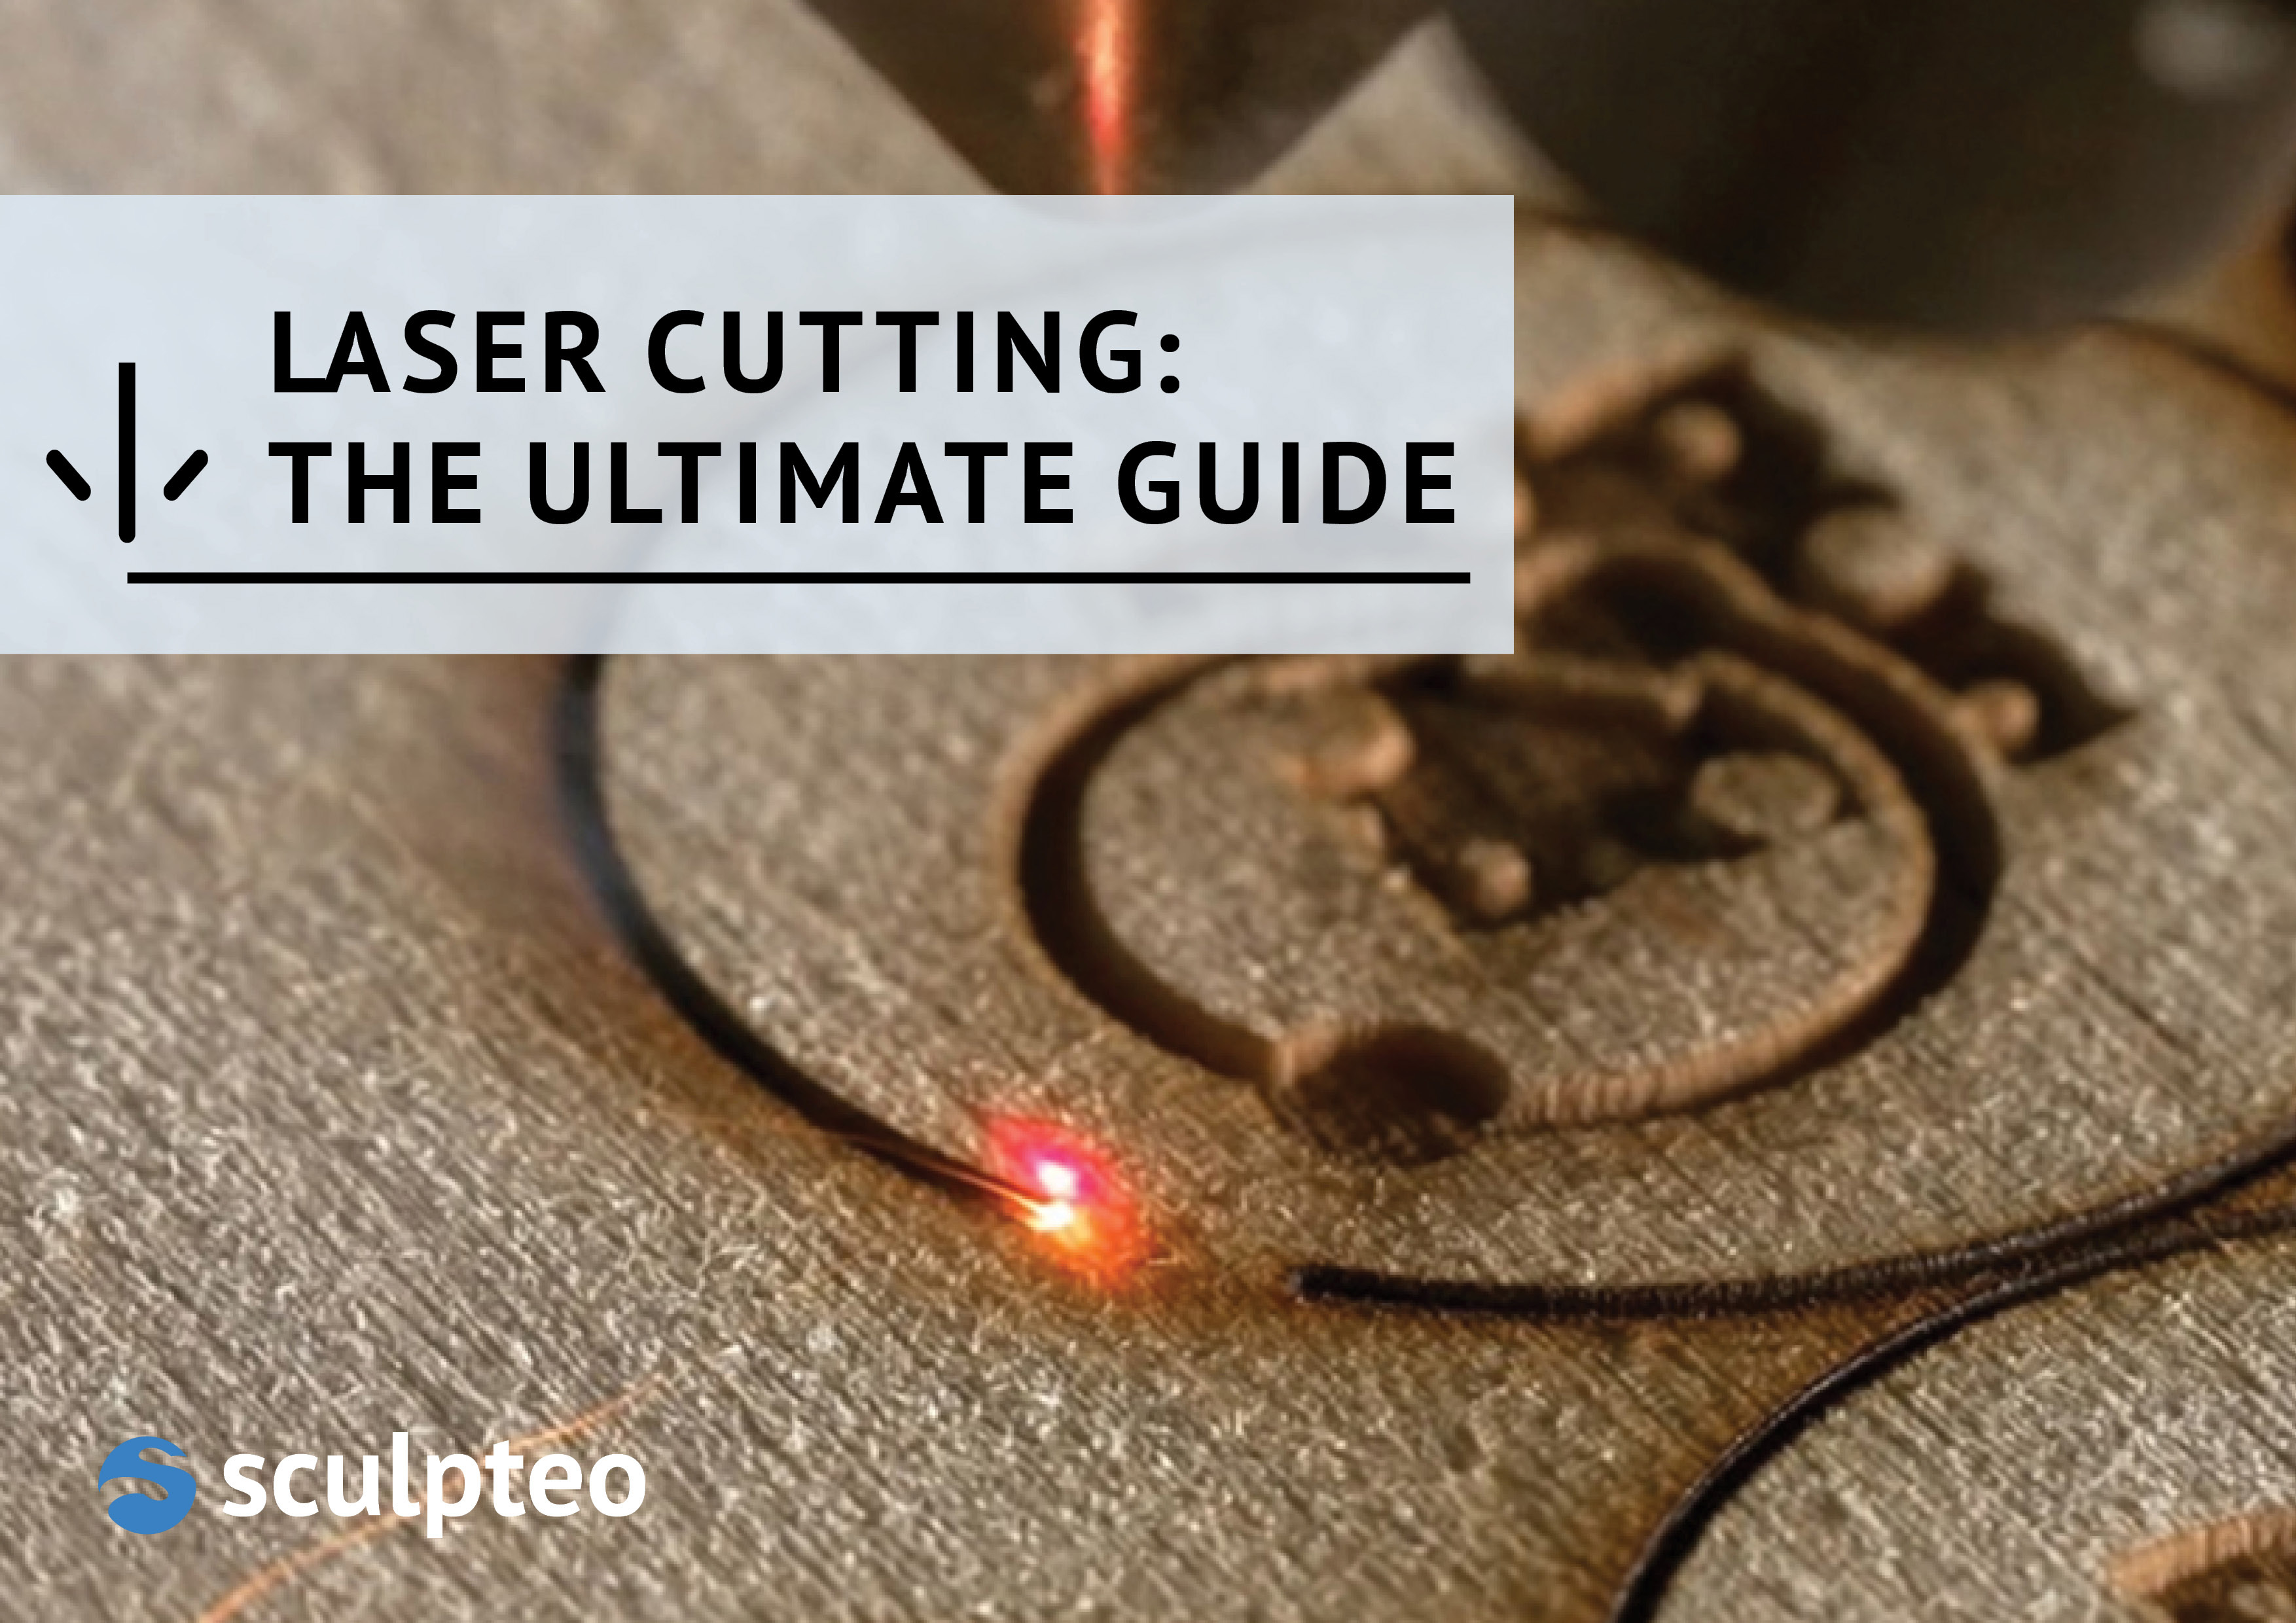 Learn more about the operating of the laser cutting machines: the origins of lasers and various examples of laser cutting industrial applications!